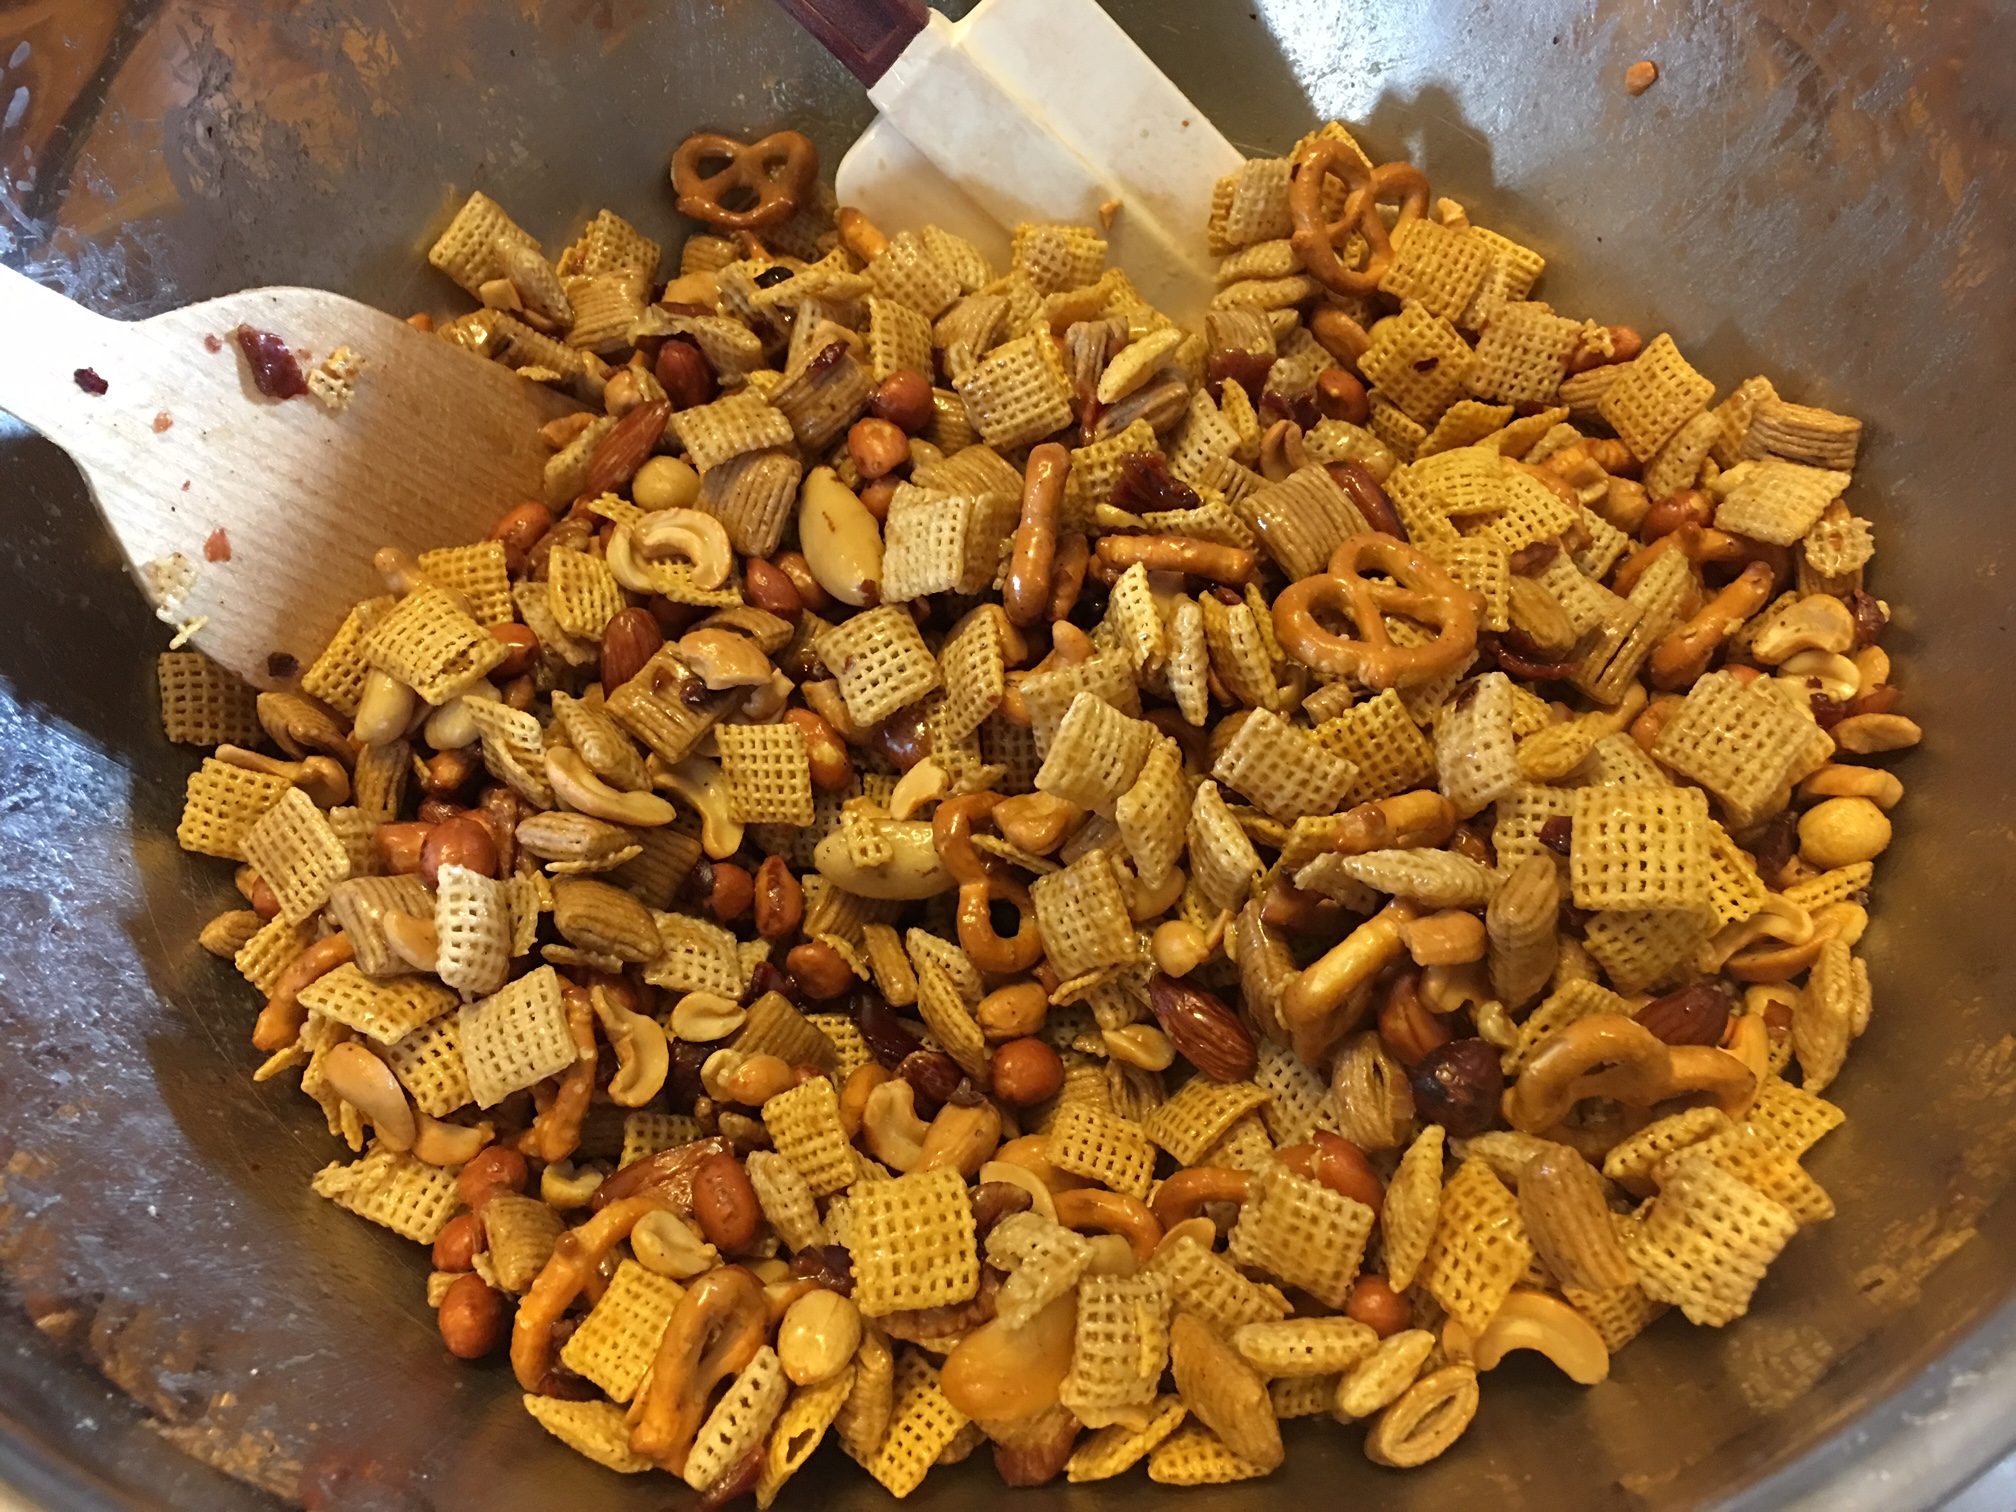 Bacon Snack Mix brianinbowlinggreen